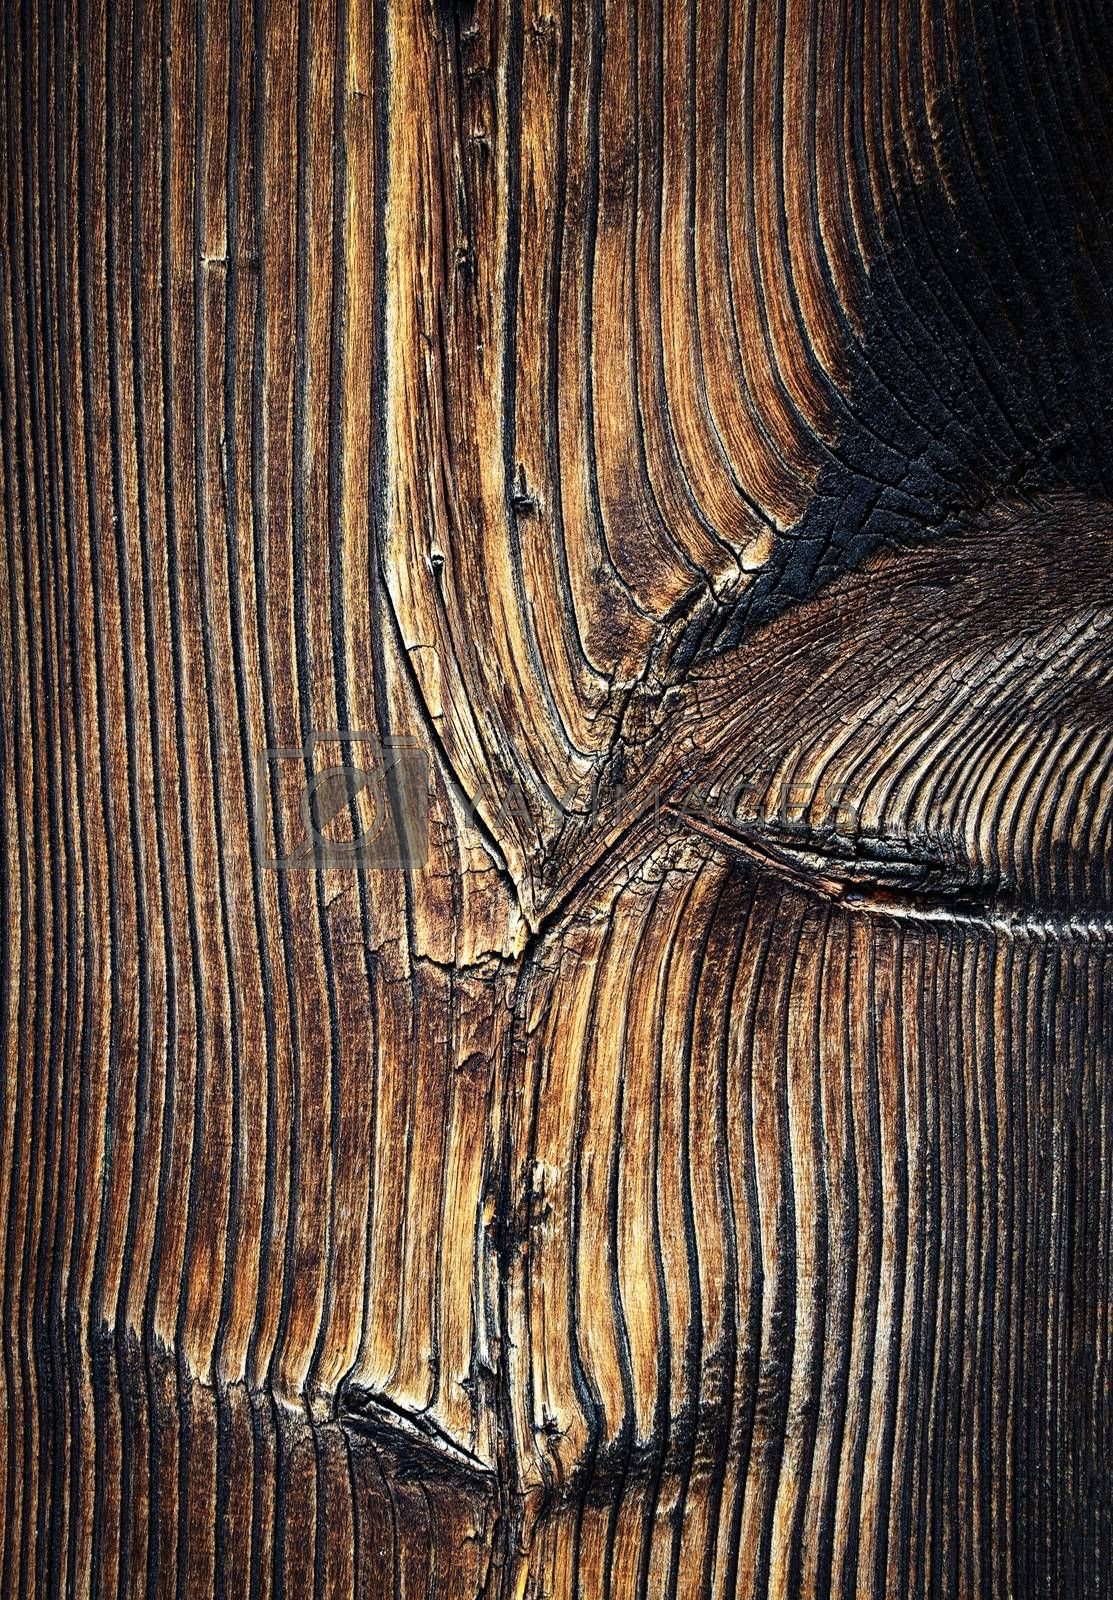 background or texture detail of an old brown wooden board